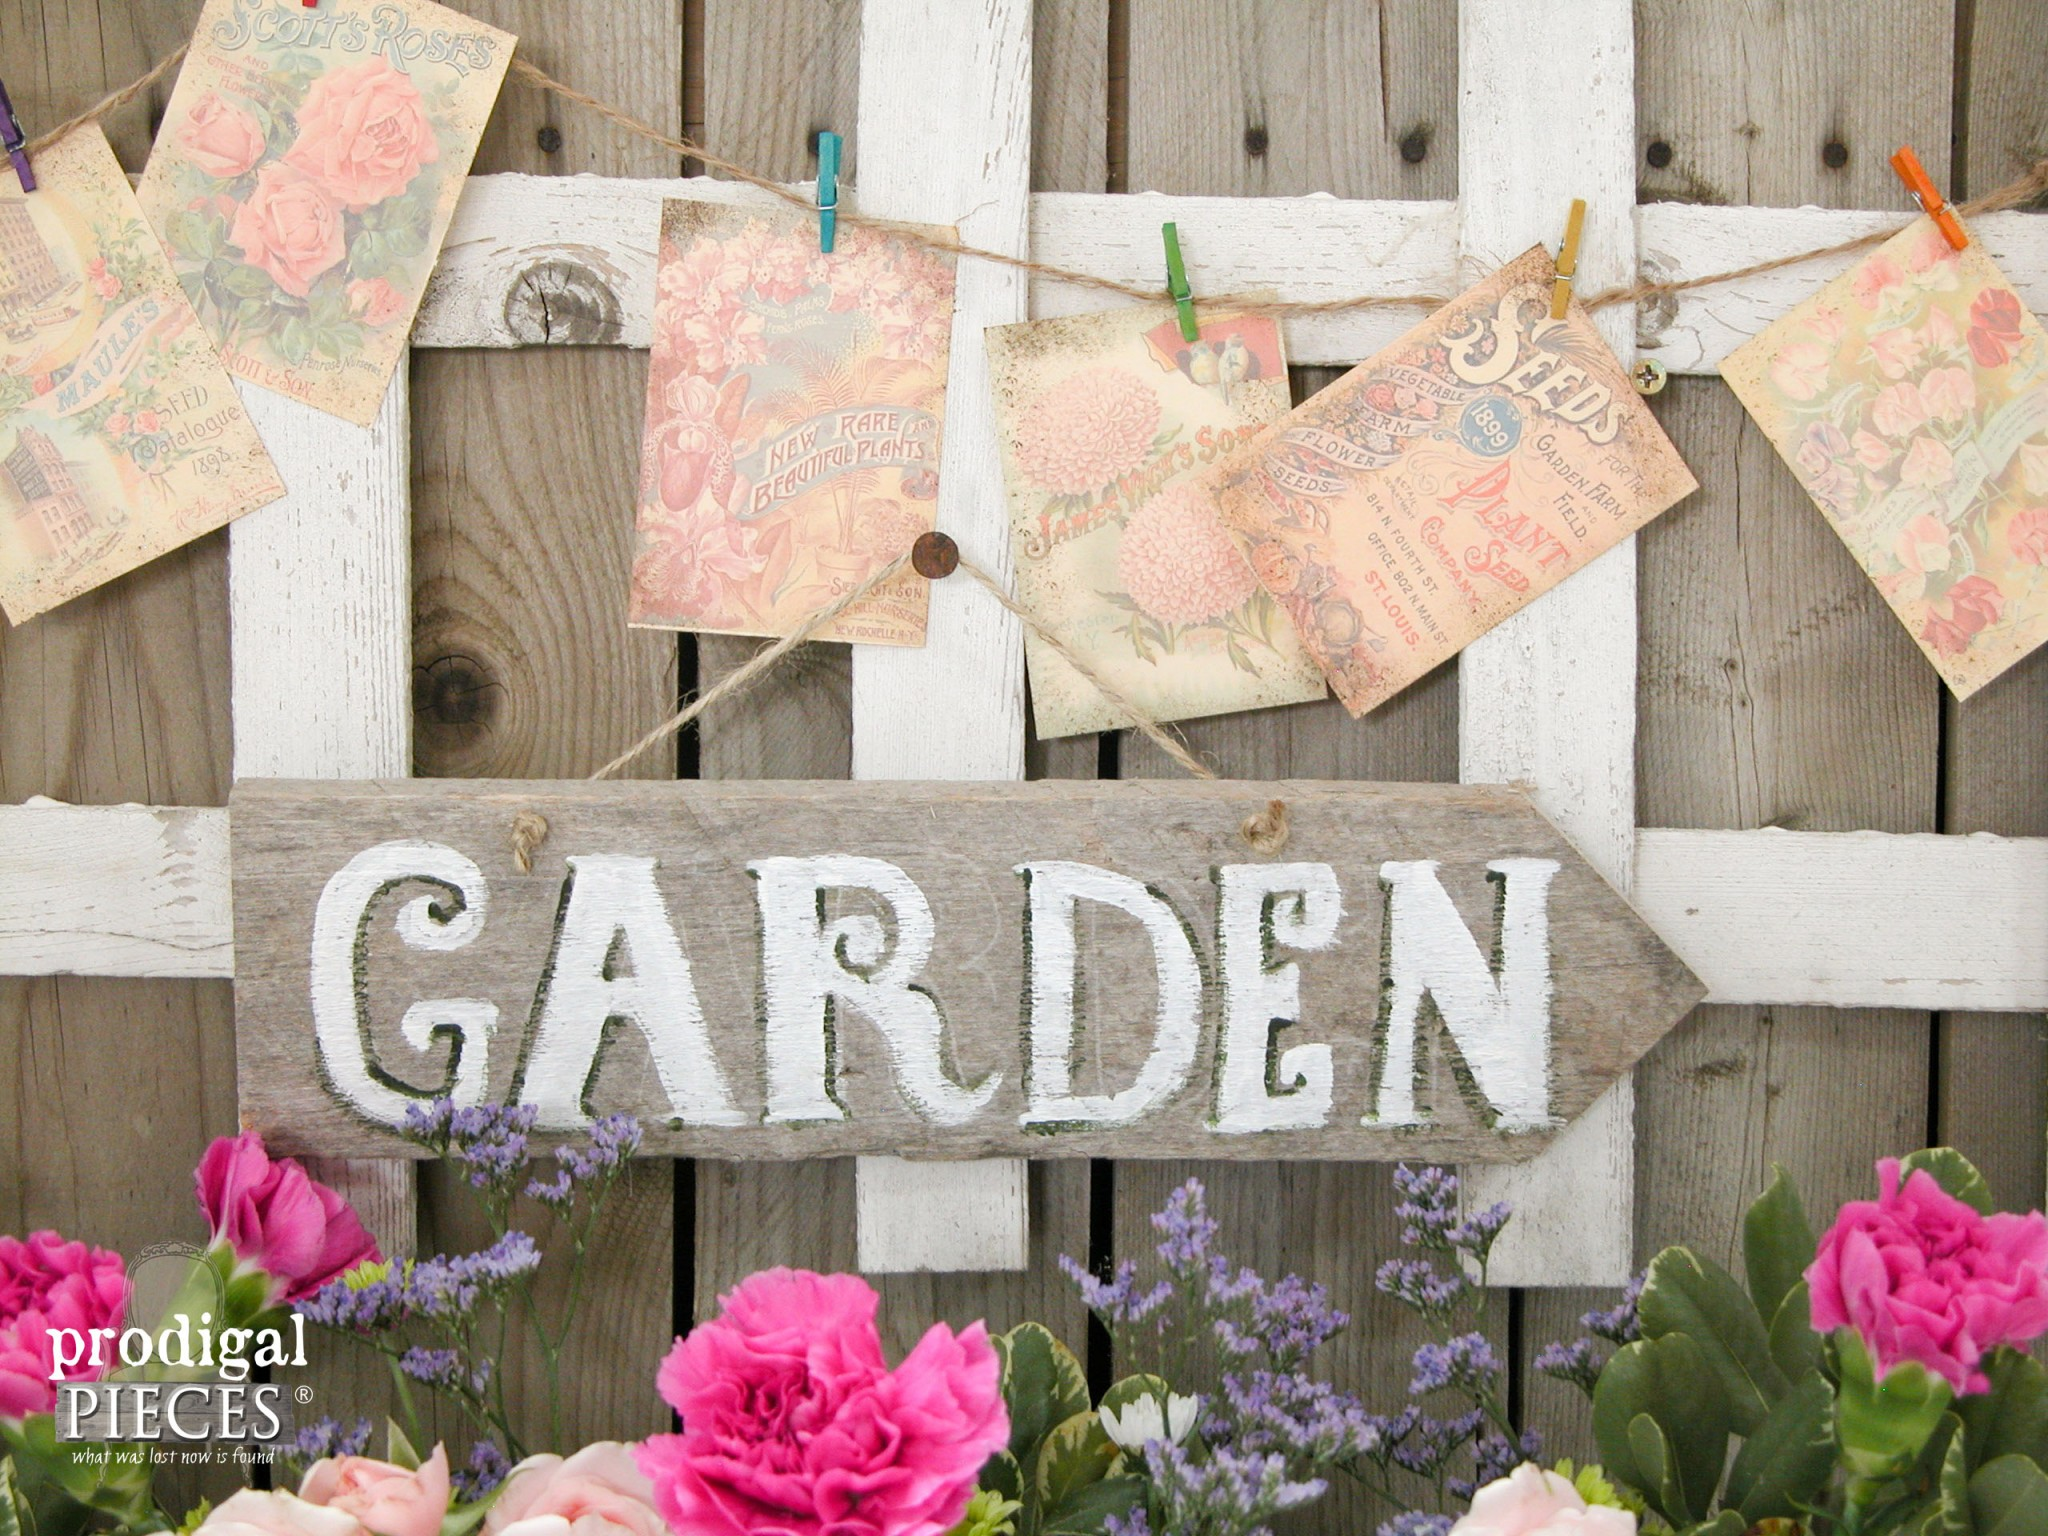 Hand-Painted Garden Sign Repurposed from Barn Wood by Prodigal Pieces | www.prodigalpieces.com